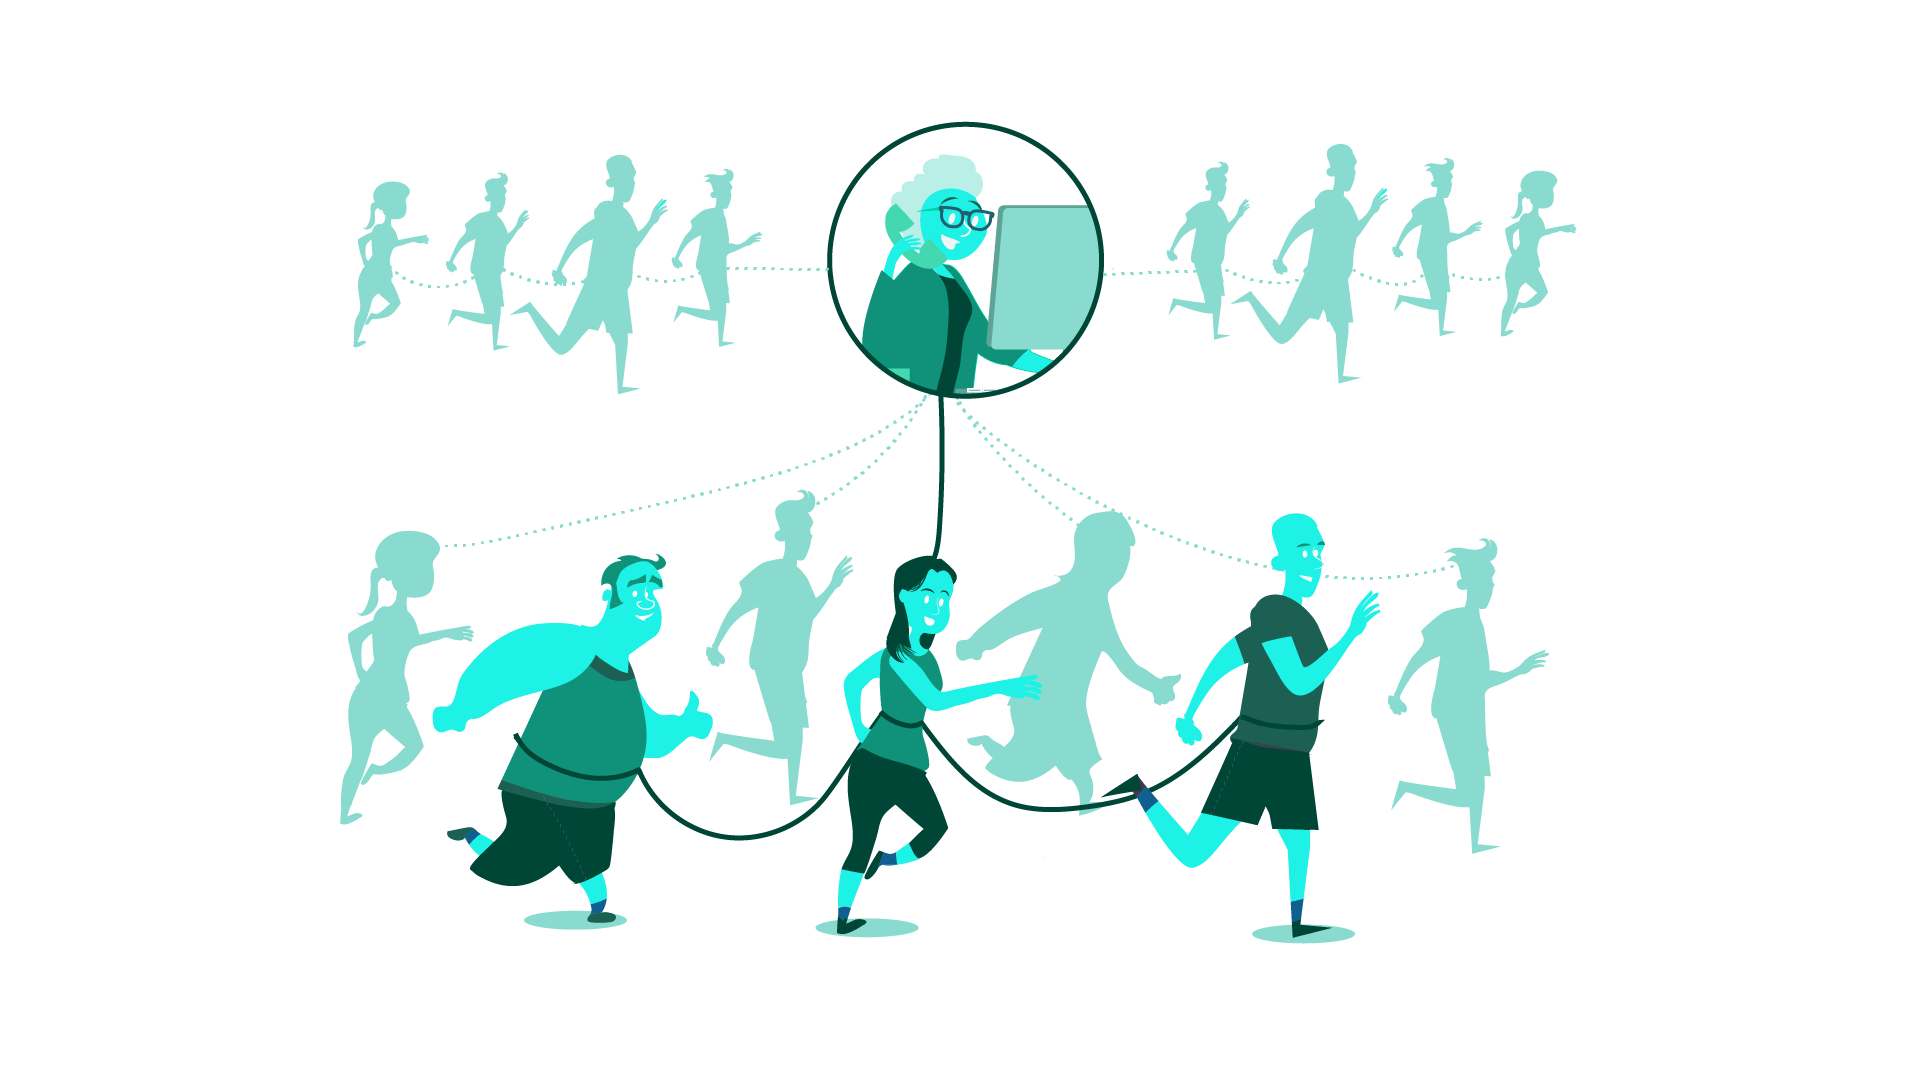 Running club example illustrating strong and weak links between each connection